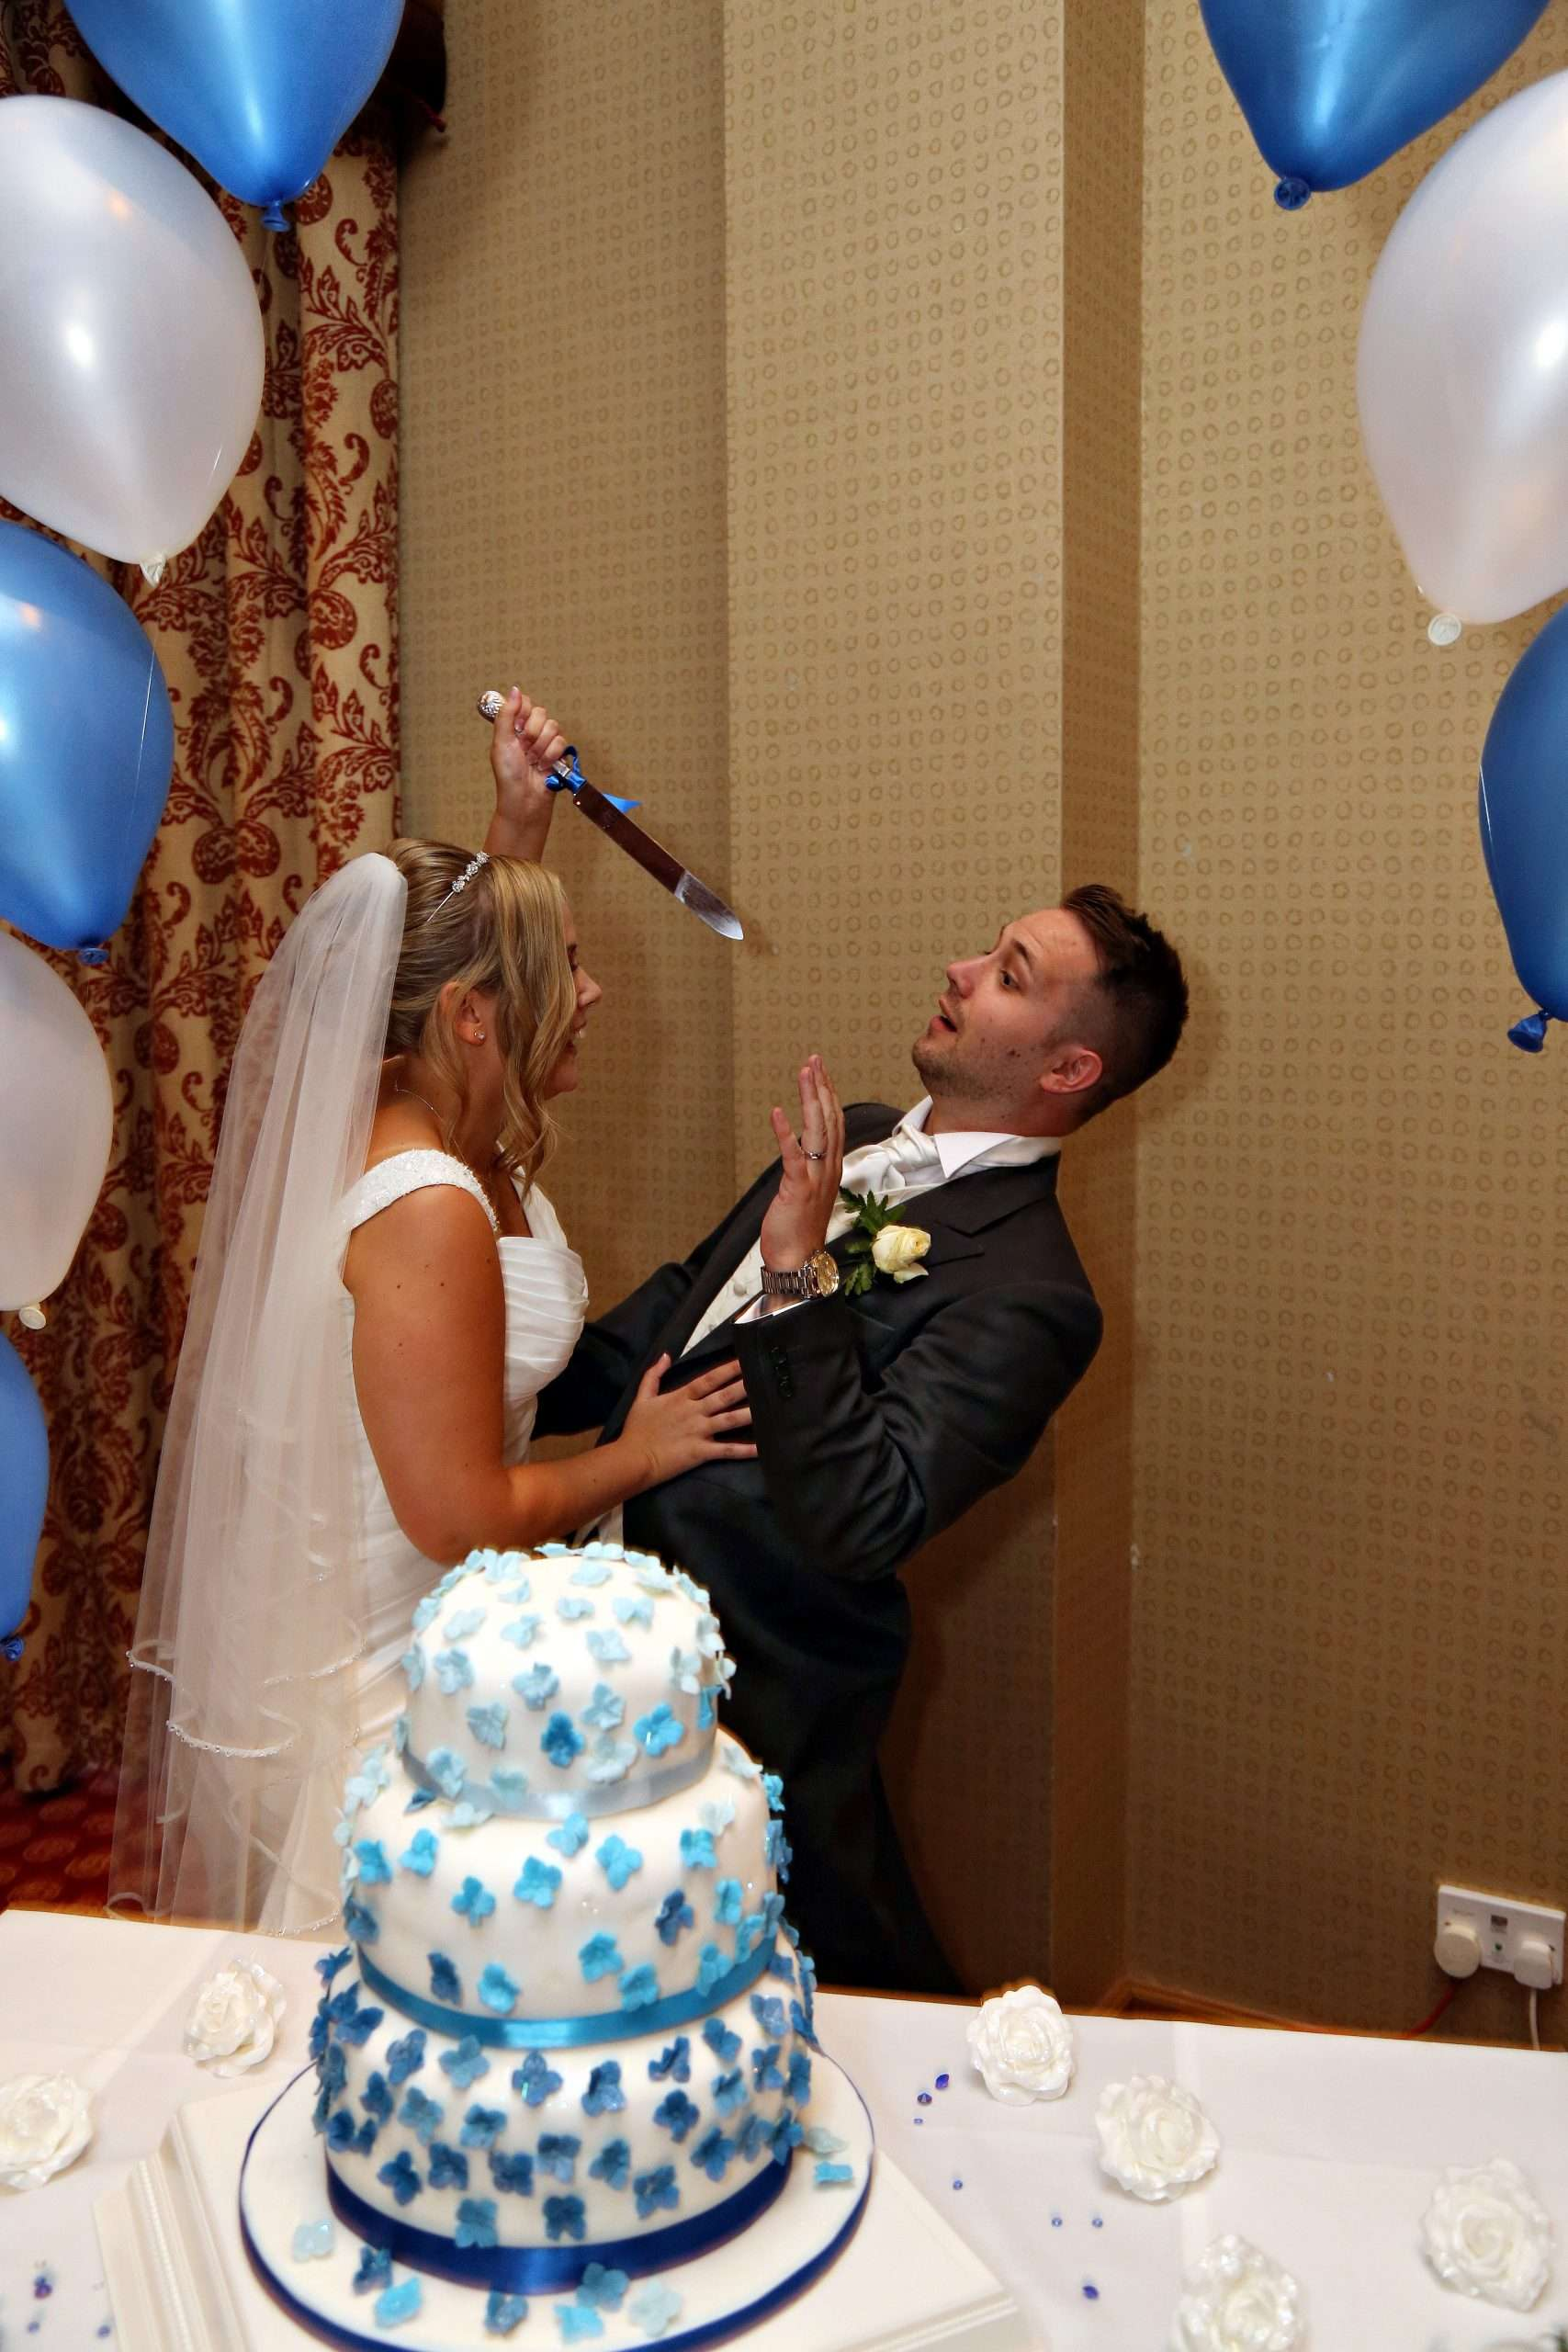 Lisa trying to stab Daz with the cake knife on our wedding day. A white and blue wedding cake is in front of us and we are under a blue and white balloon arch